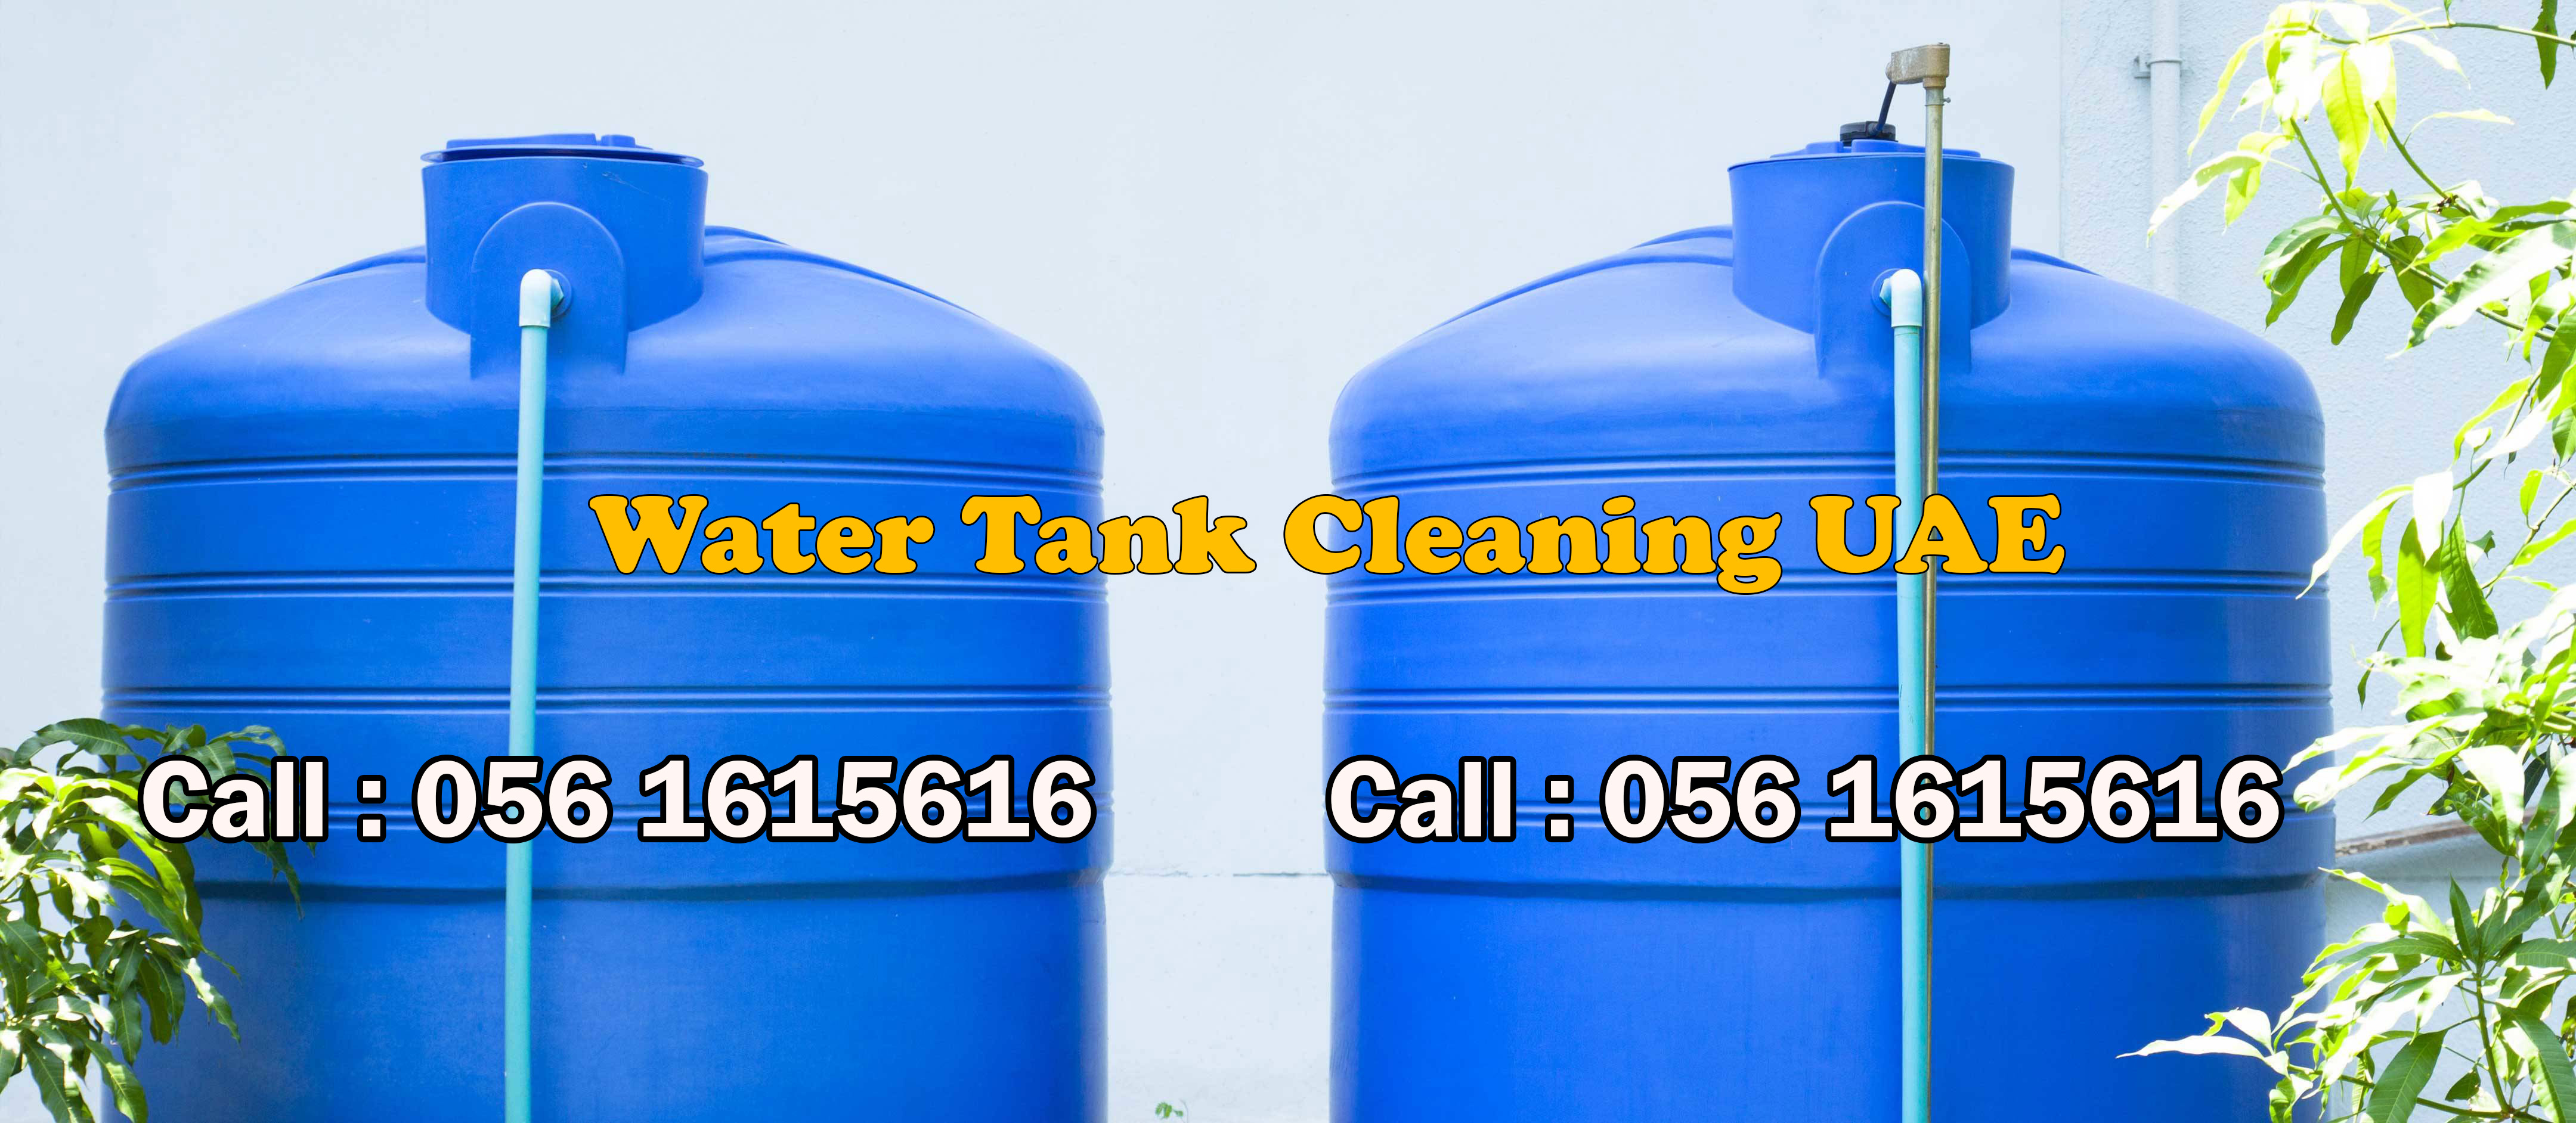 Water Cleaning Services : Importnce of water tank cleaning services dubai plutonic